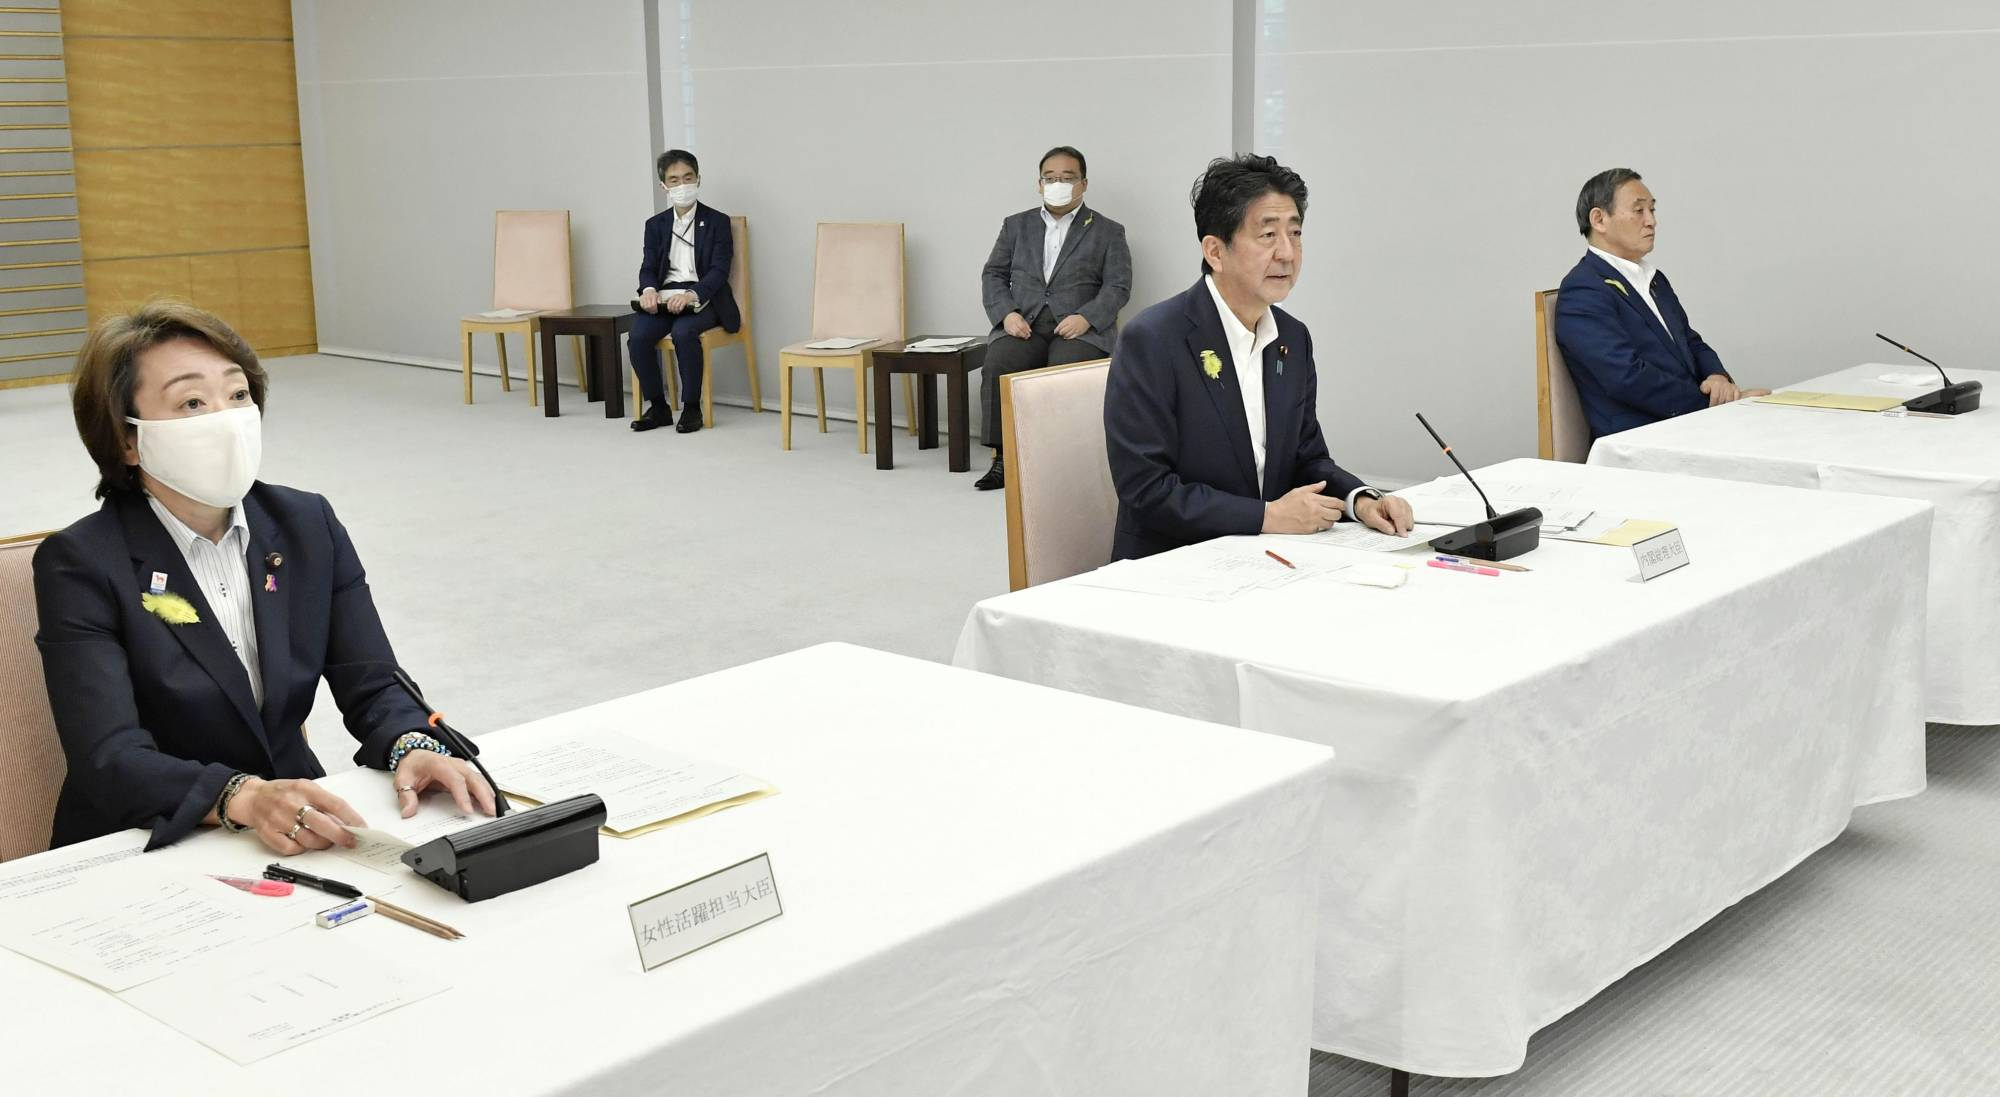 Prime Minister Shinzo Abe (center) addresses a meeting on female empowerment held at the Prime Minister's Office on Wednesday. | KYODO